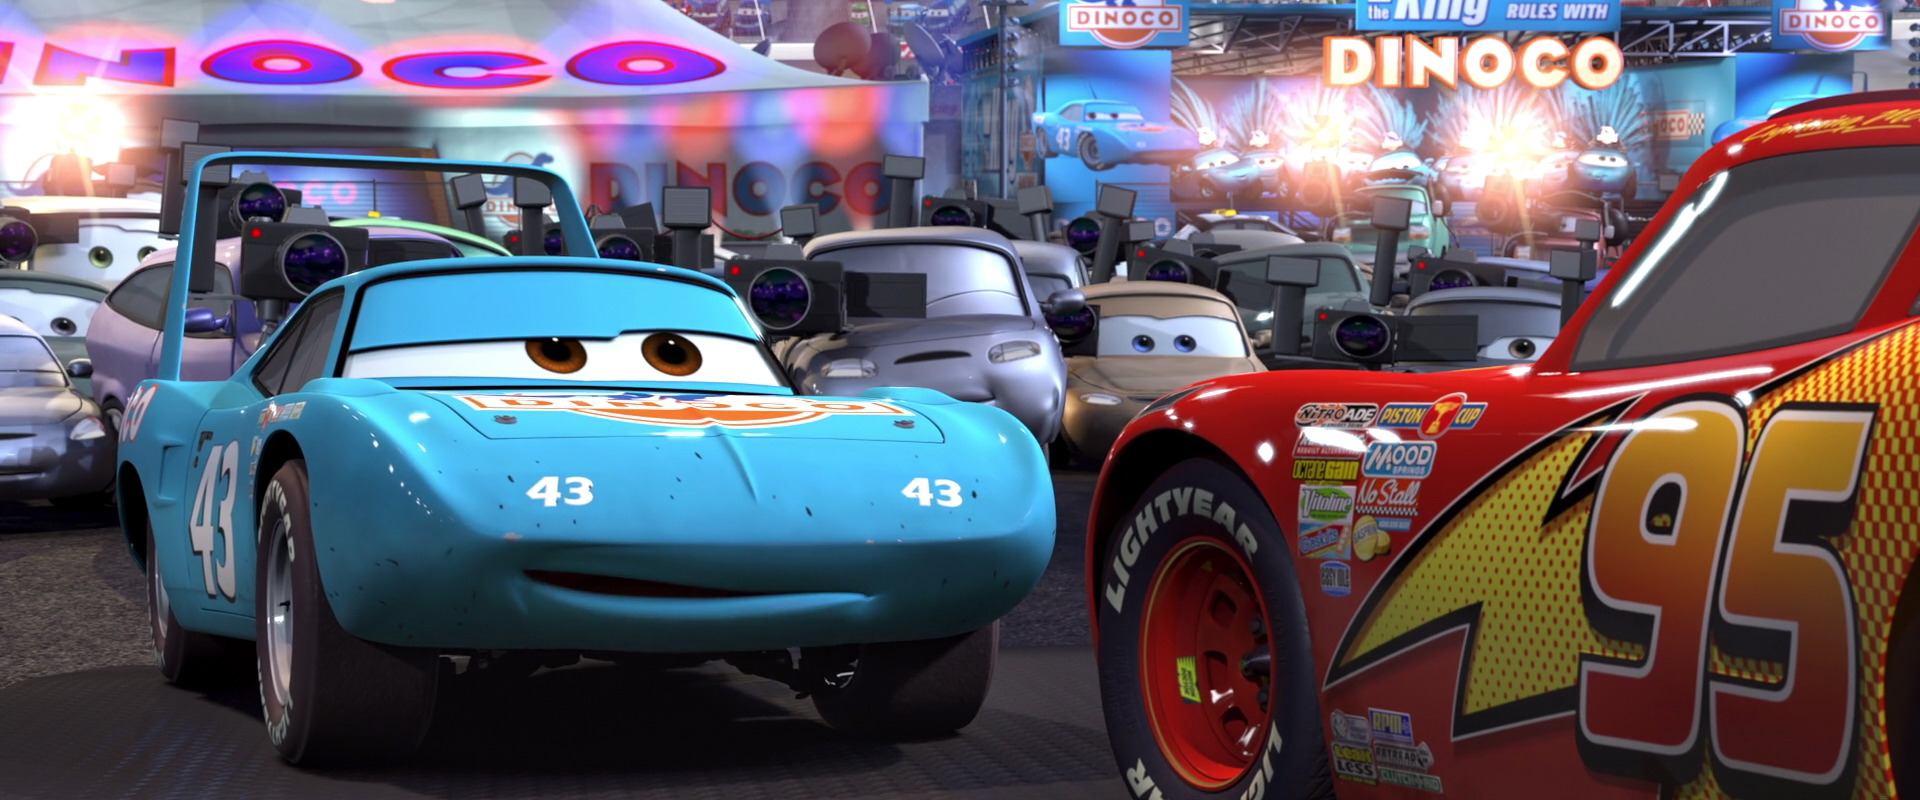 strip king weathers personnage character pixar disney cars